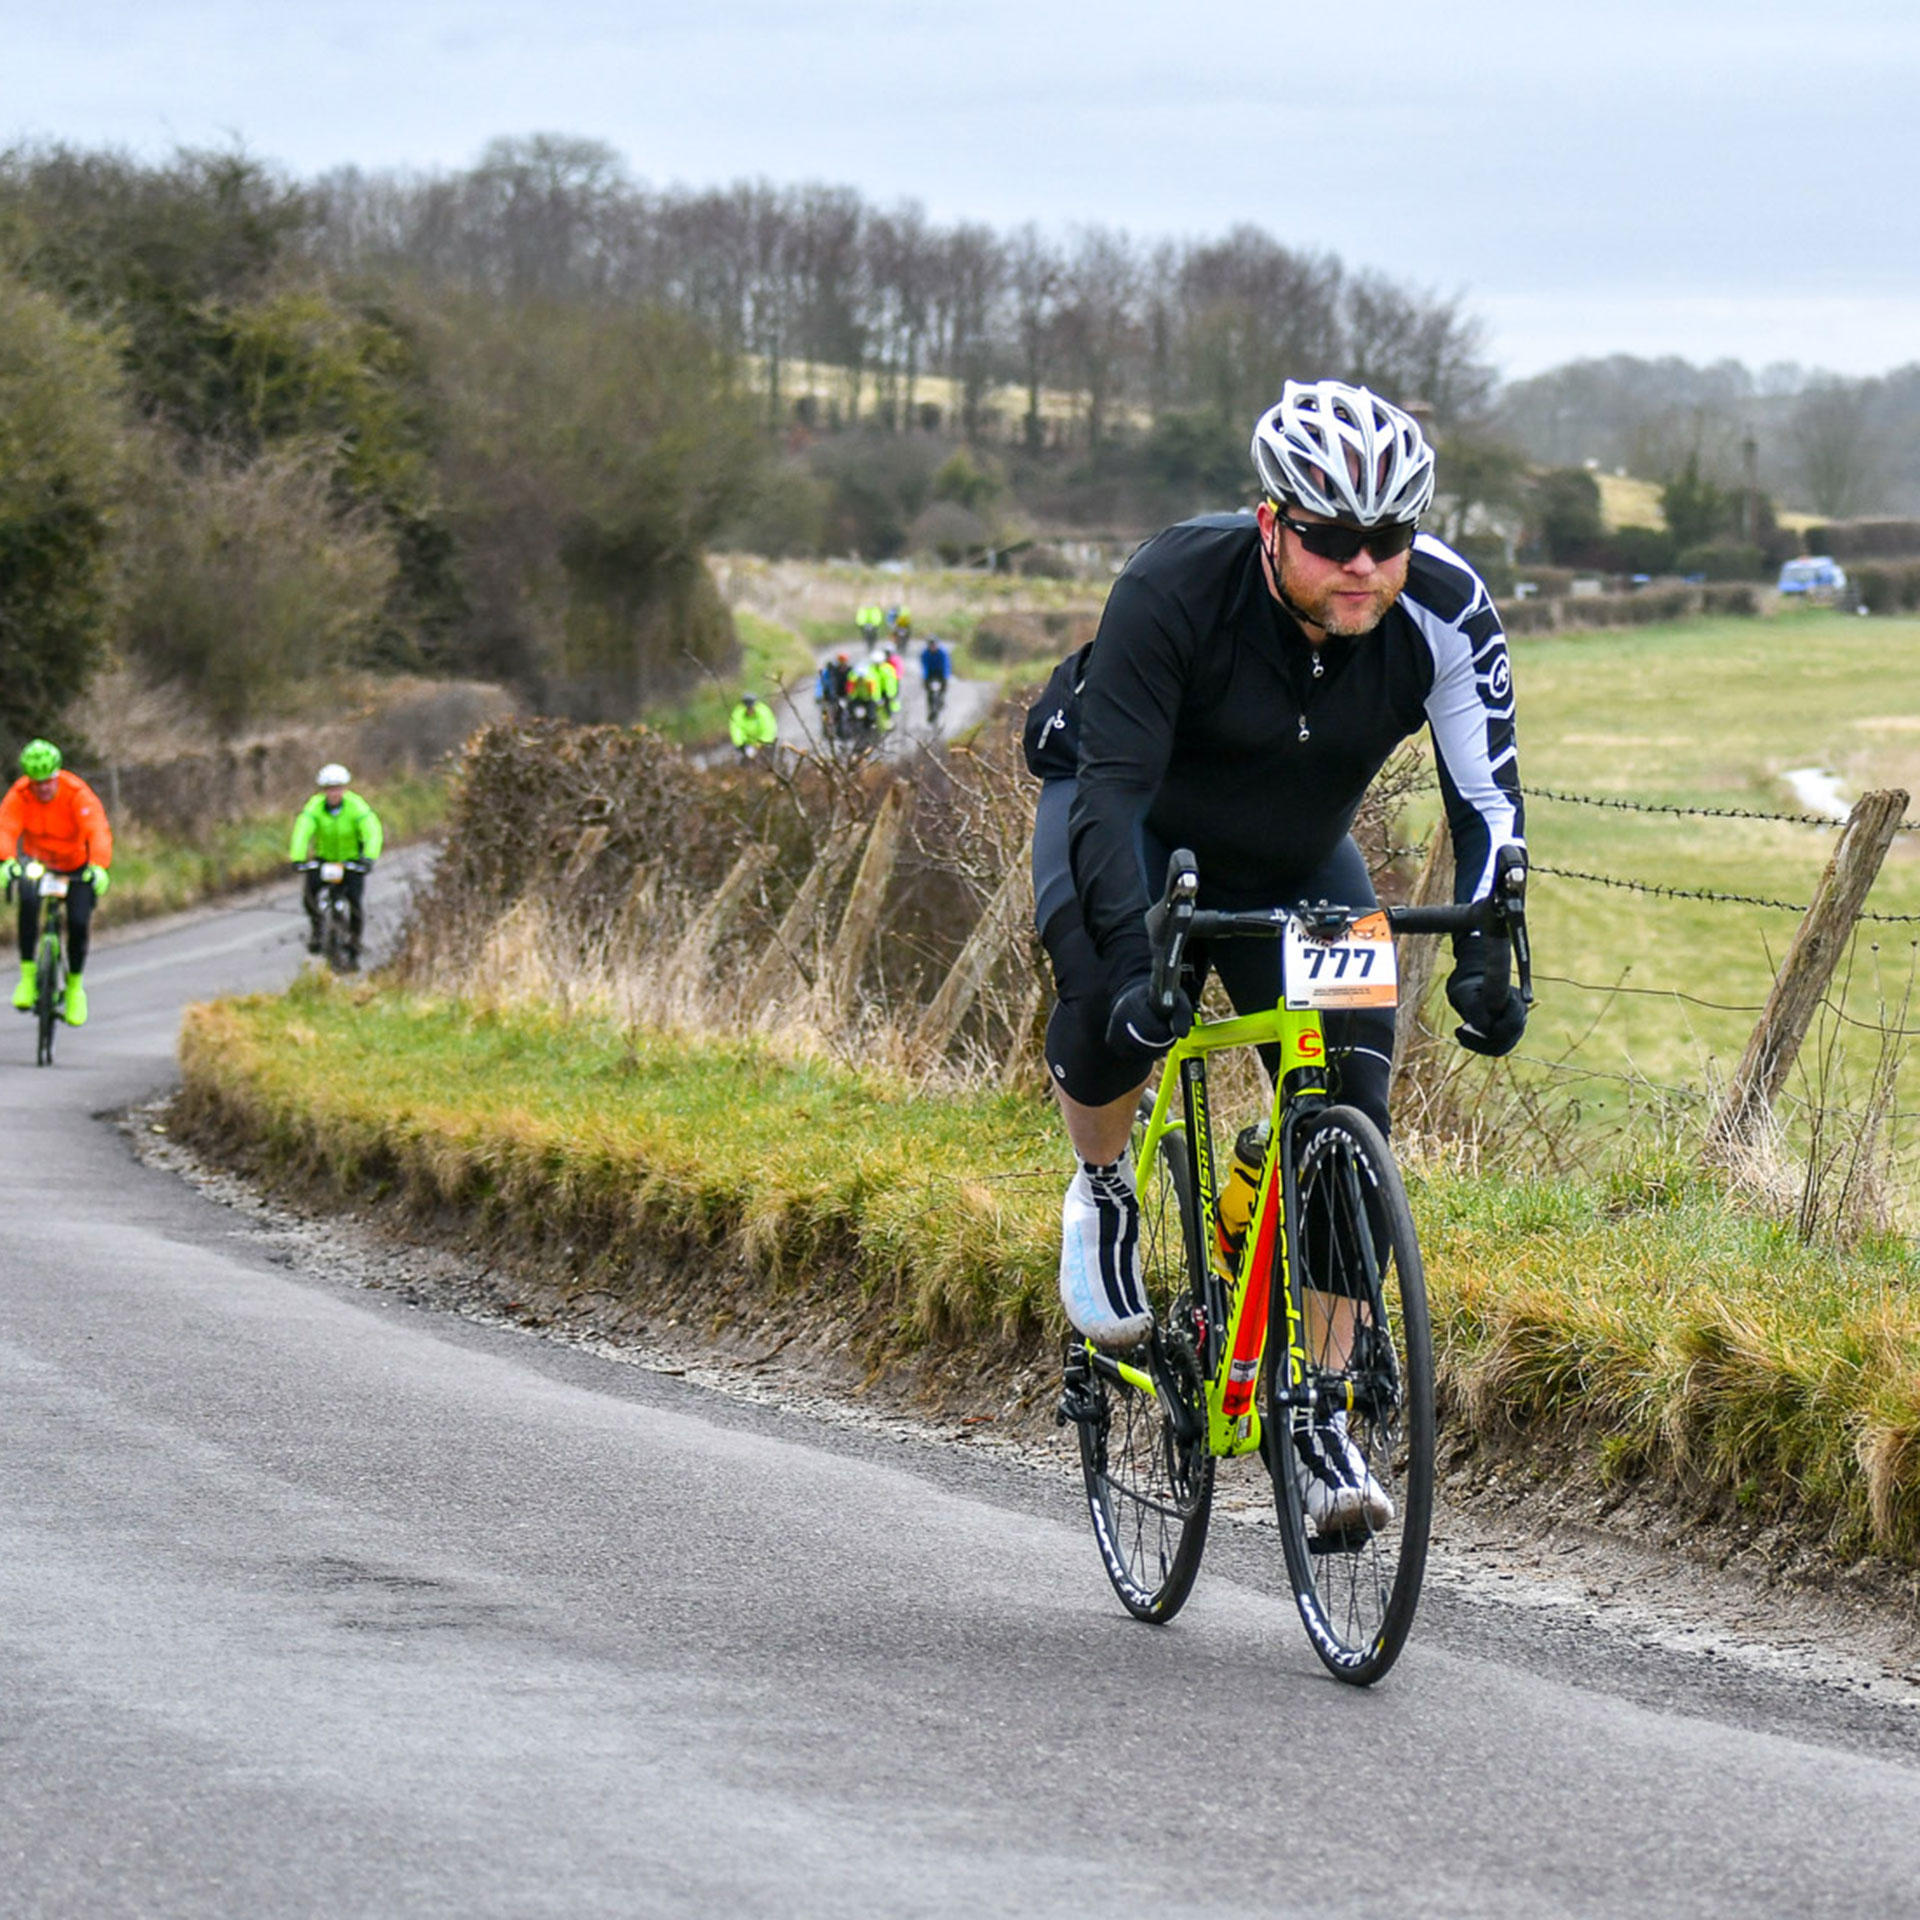 Cyclist Riding the Wiltshire Wildcat Sportive